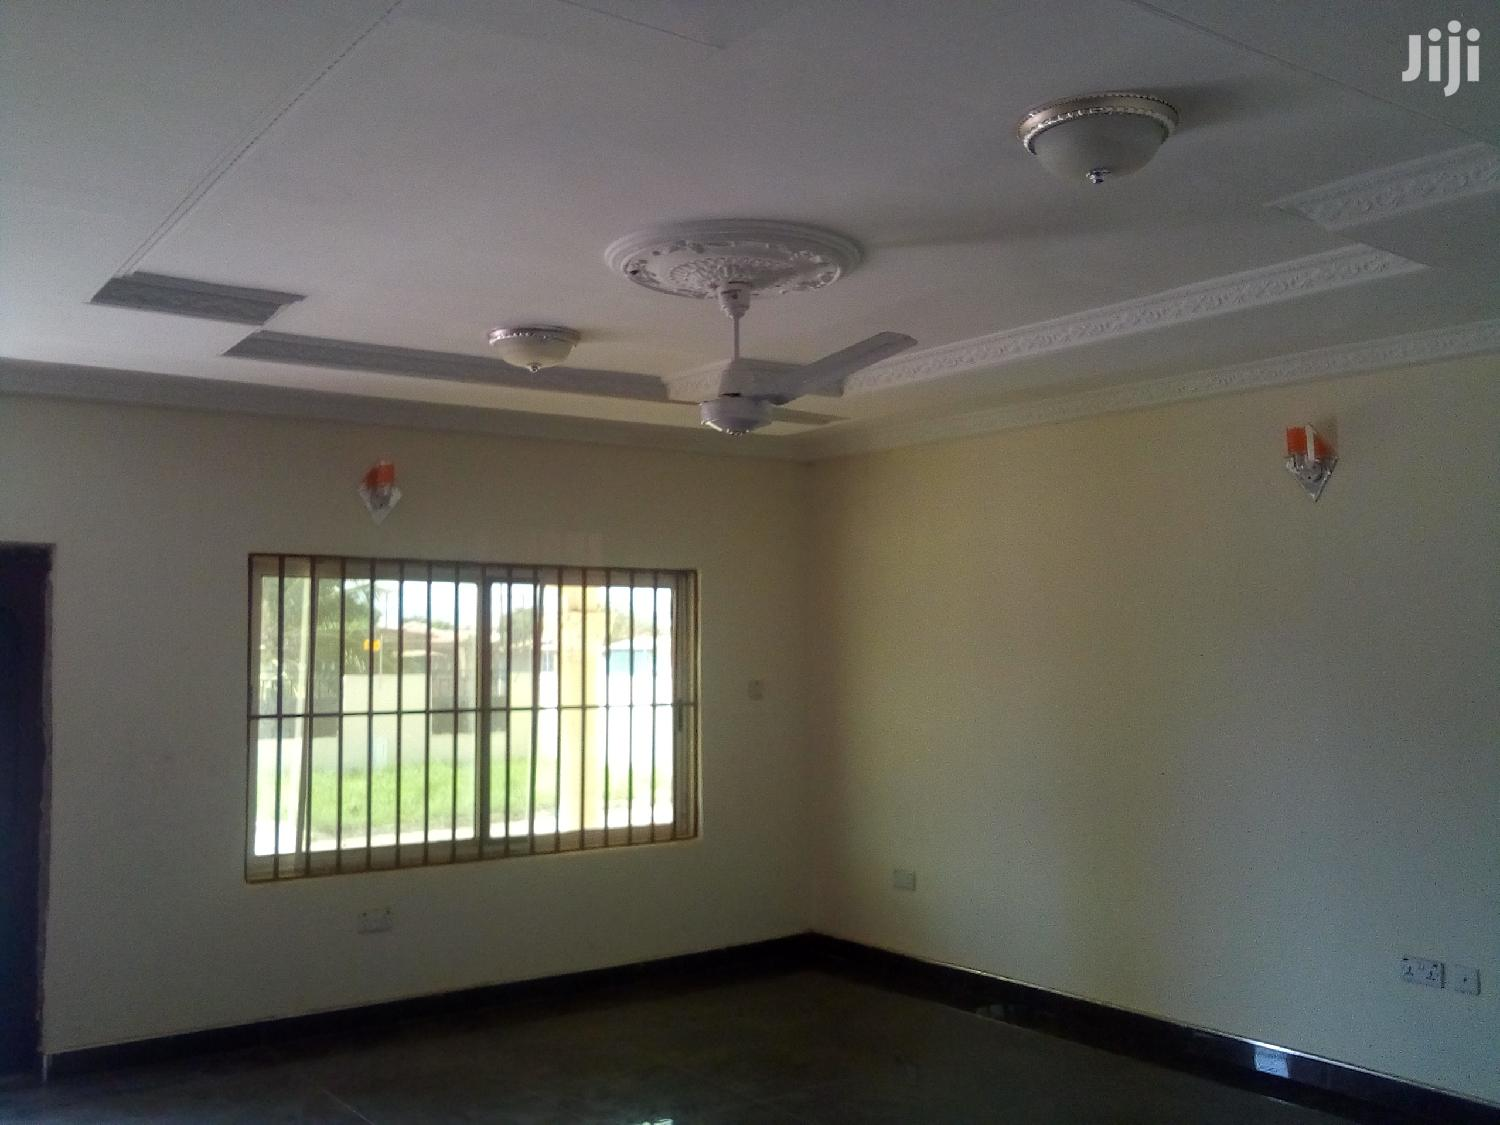 3 Bedrooms House 4 Sale at Oyarifa Special Iceand Is Going Fo 350,000 | Houses & Apartments For Sale for sale in Adenta Municipal, Greater Accra, Ghana